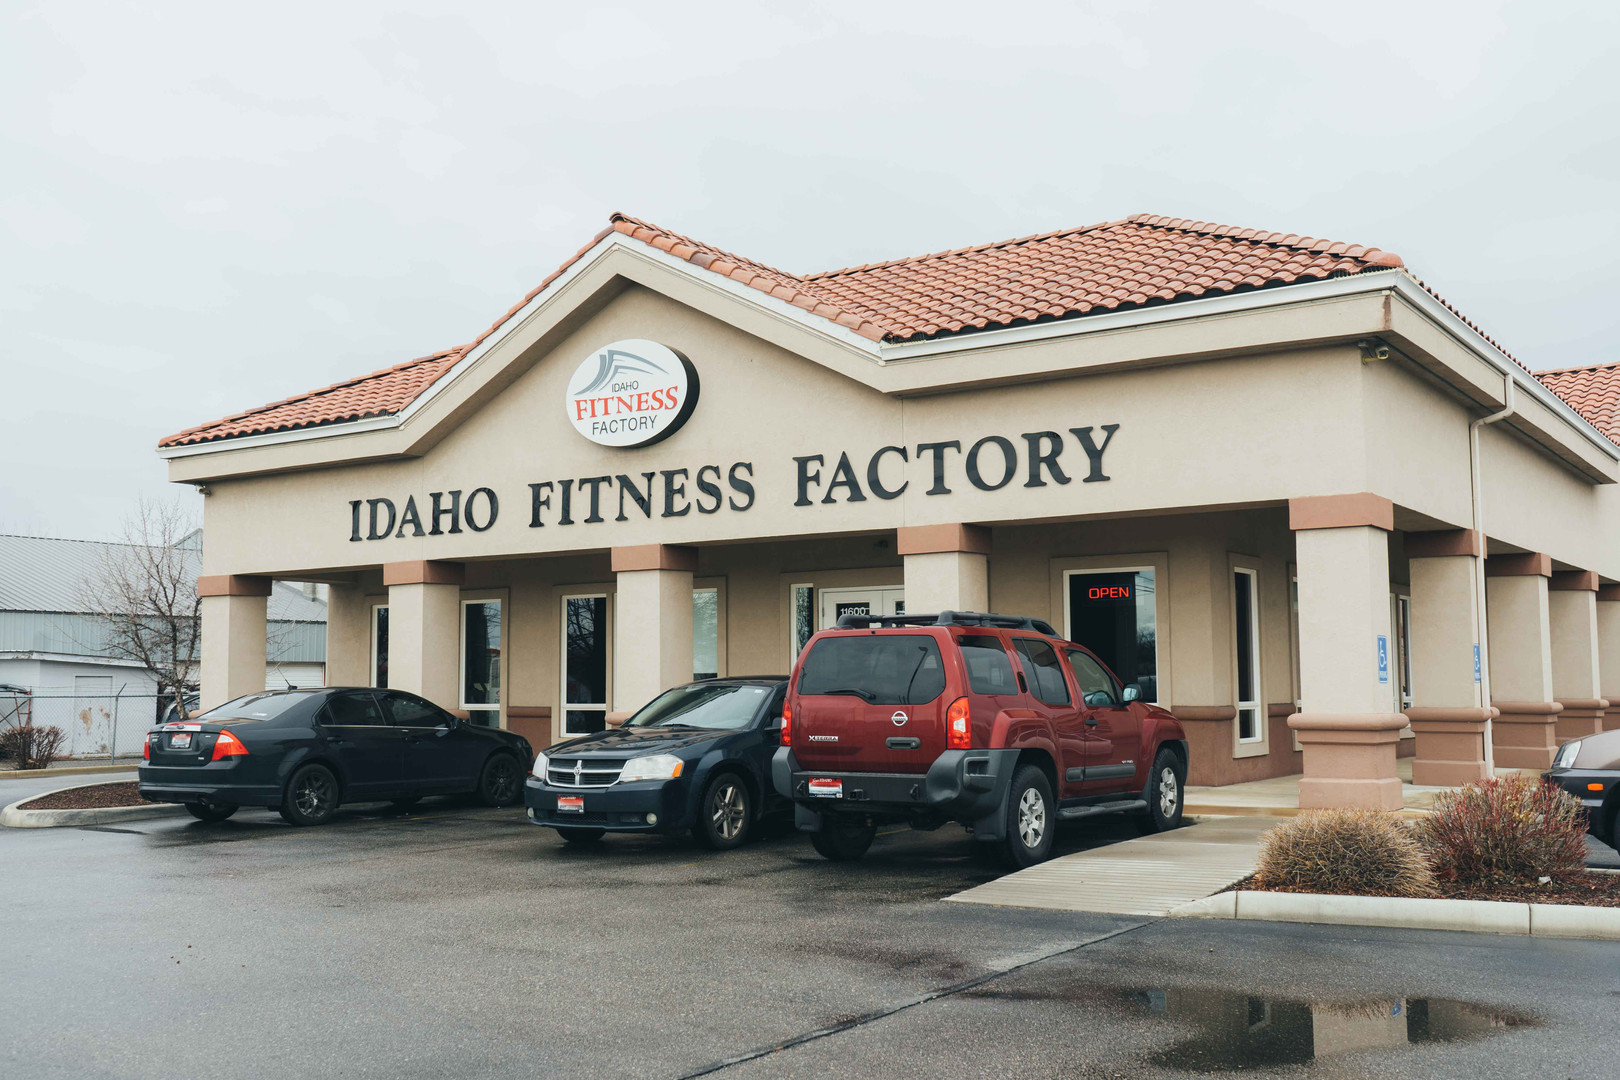 11600 W. Fairview Ave. Boise Idhao 83713